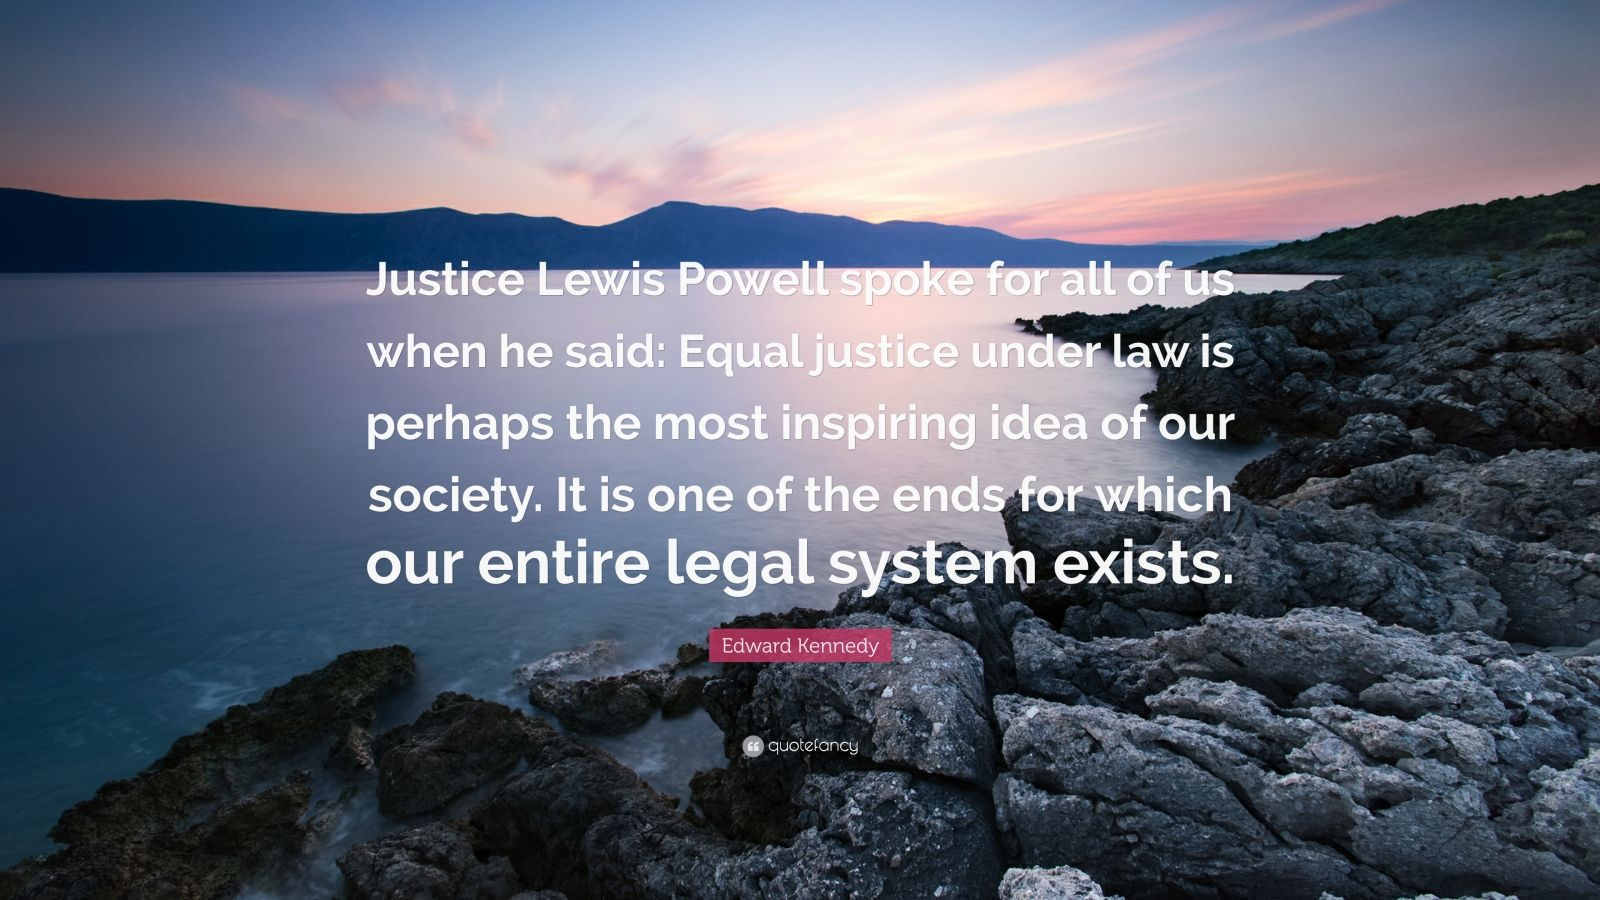 "Edward Kennedy Quote: ""Justice Lewis Powell spoke for all of us when he said: Equal justice under law is perhaps the most inspiring idea of our society. It is one of the ends for which our entire legal system exists."""